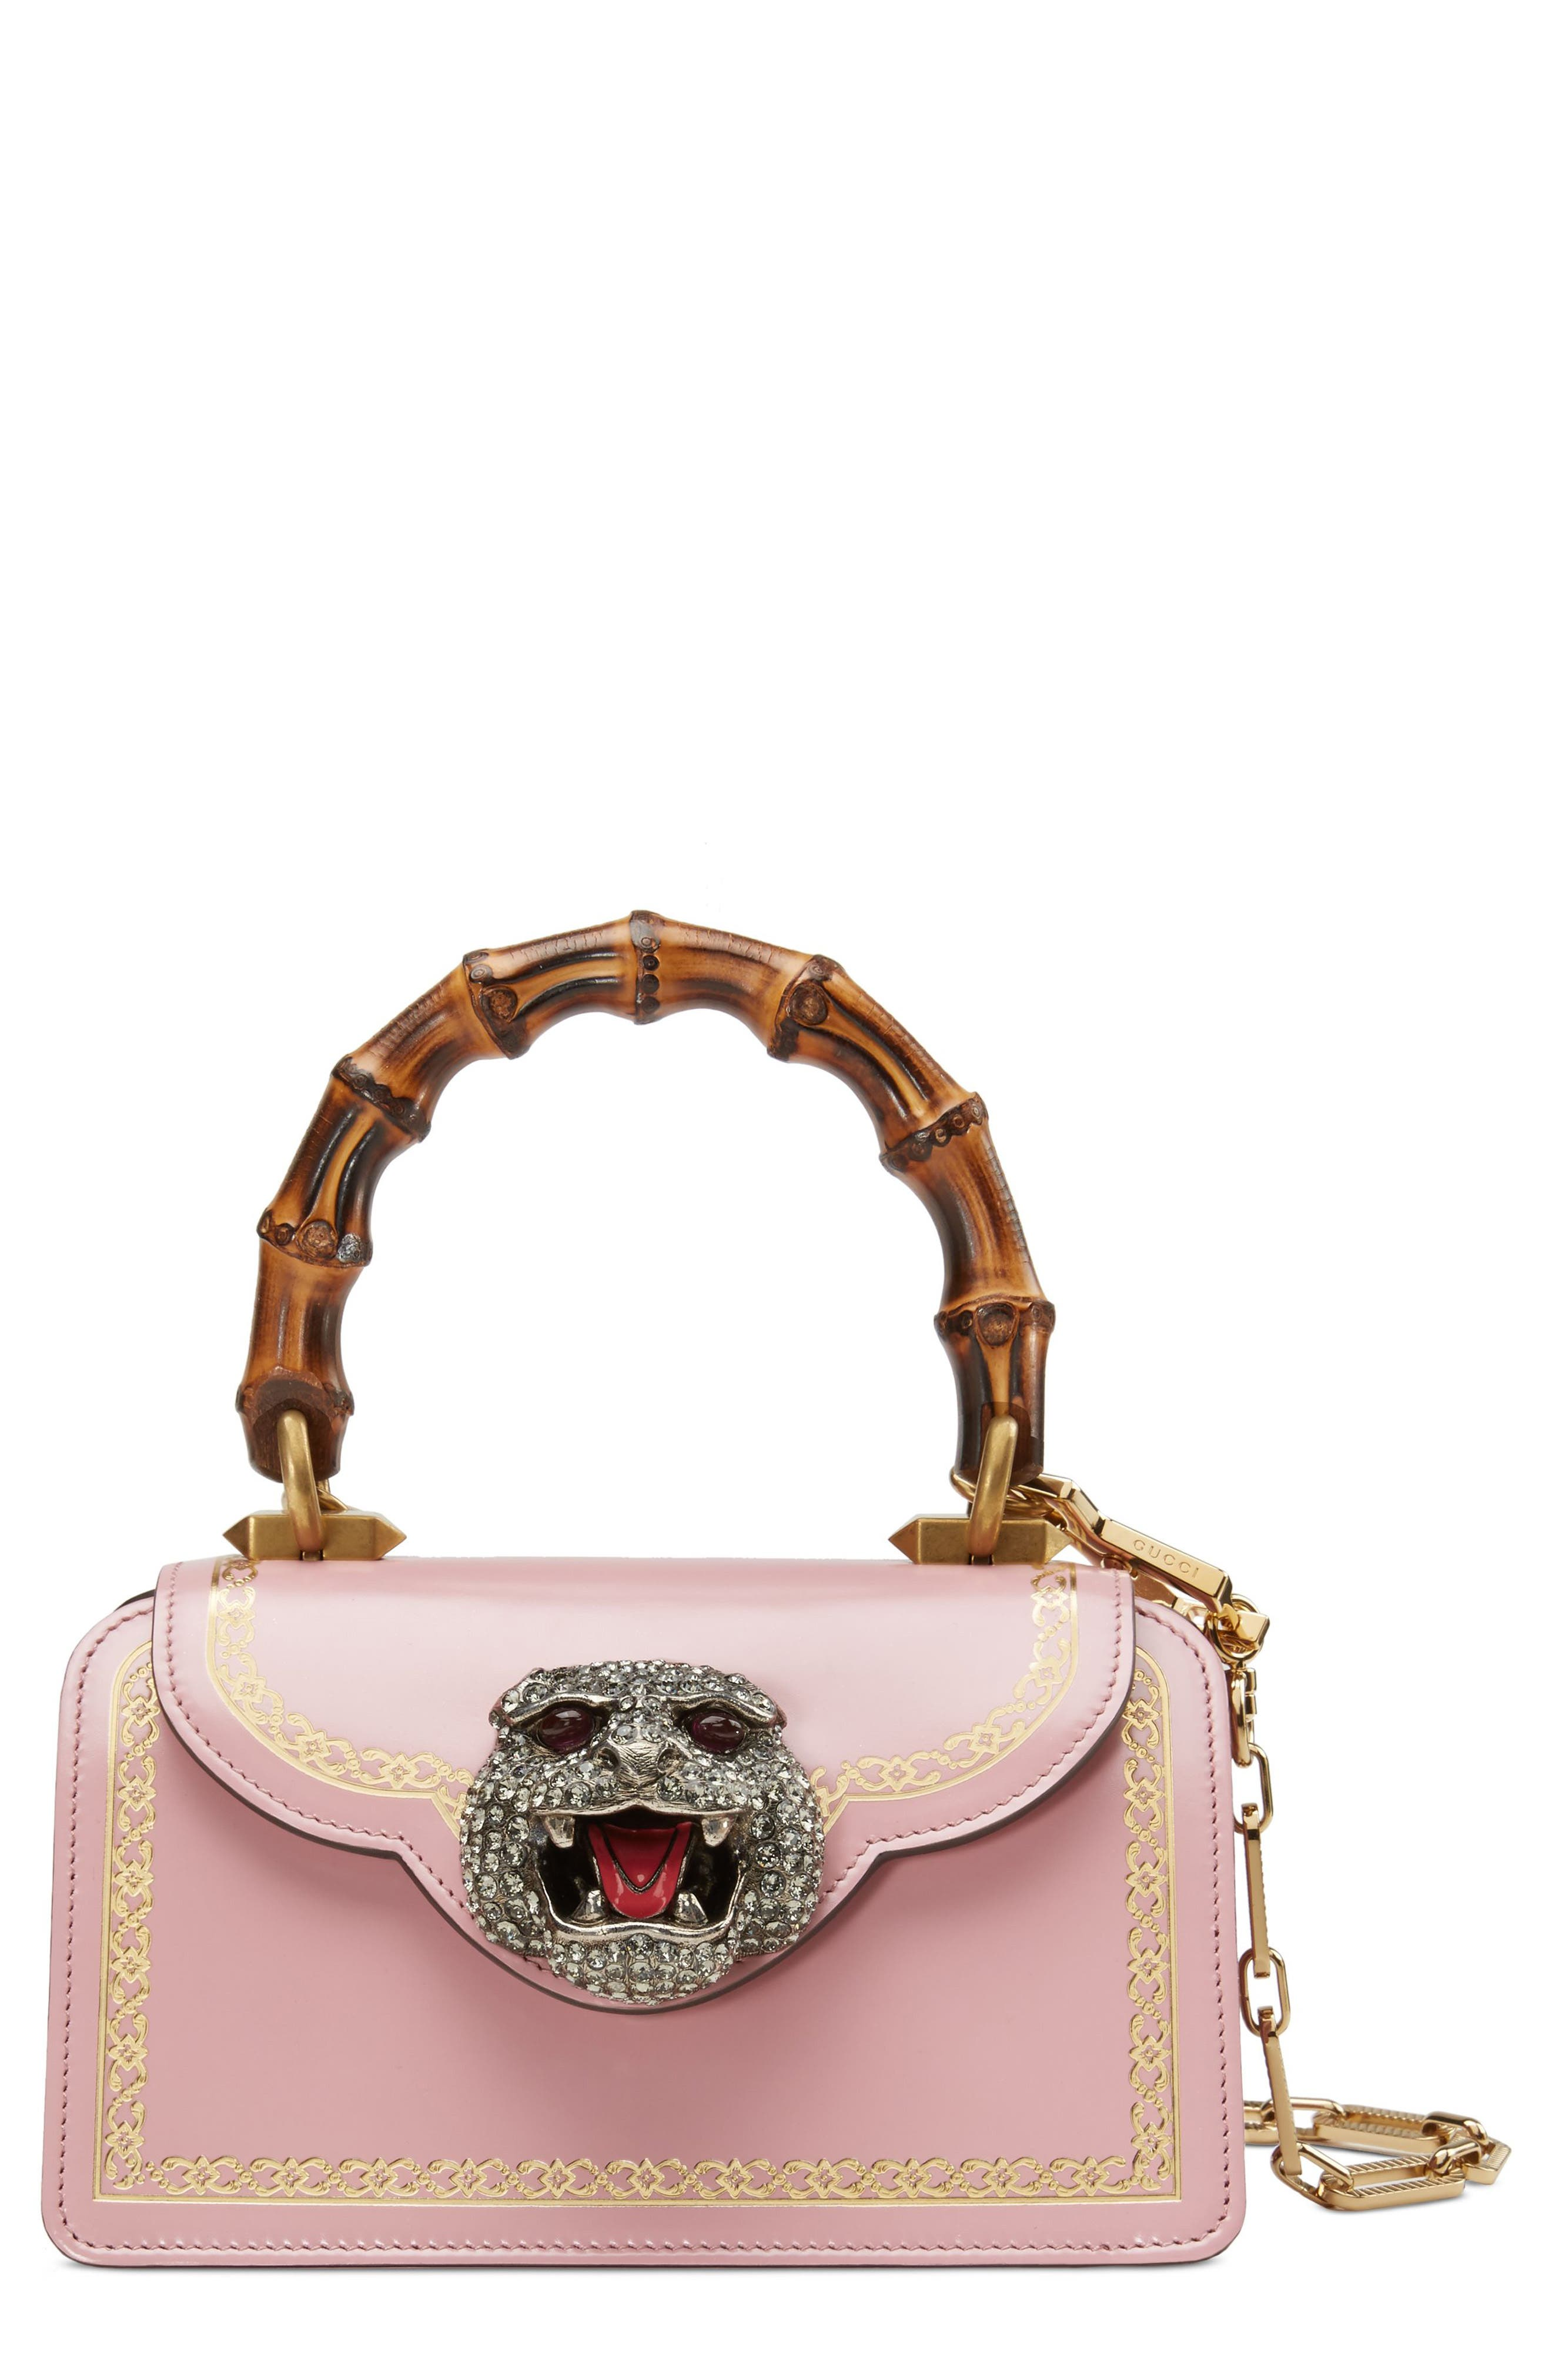 Gucci Mini Thiara Top Handle Leather Satchel